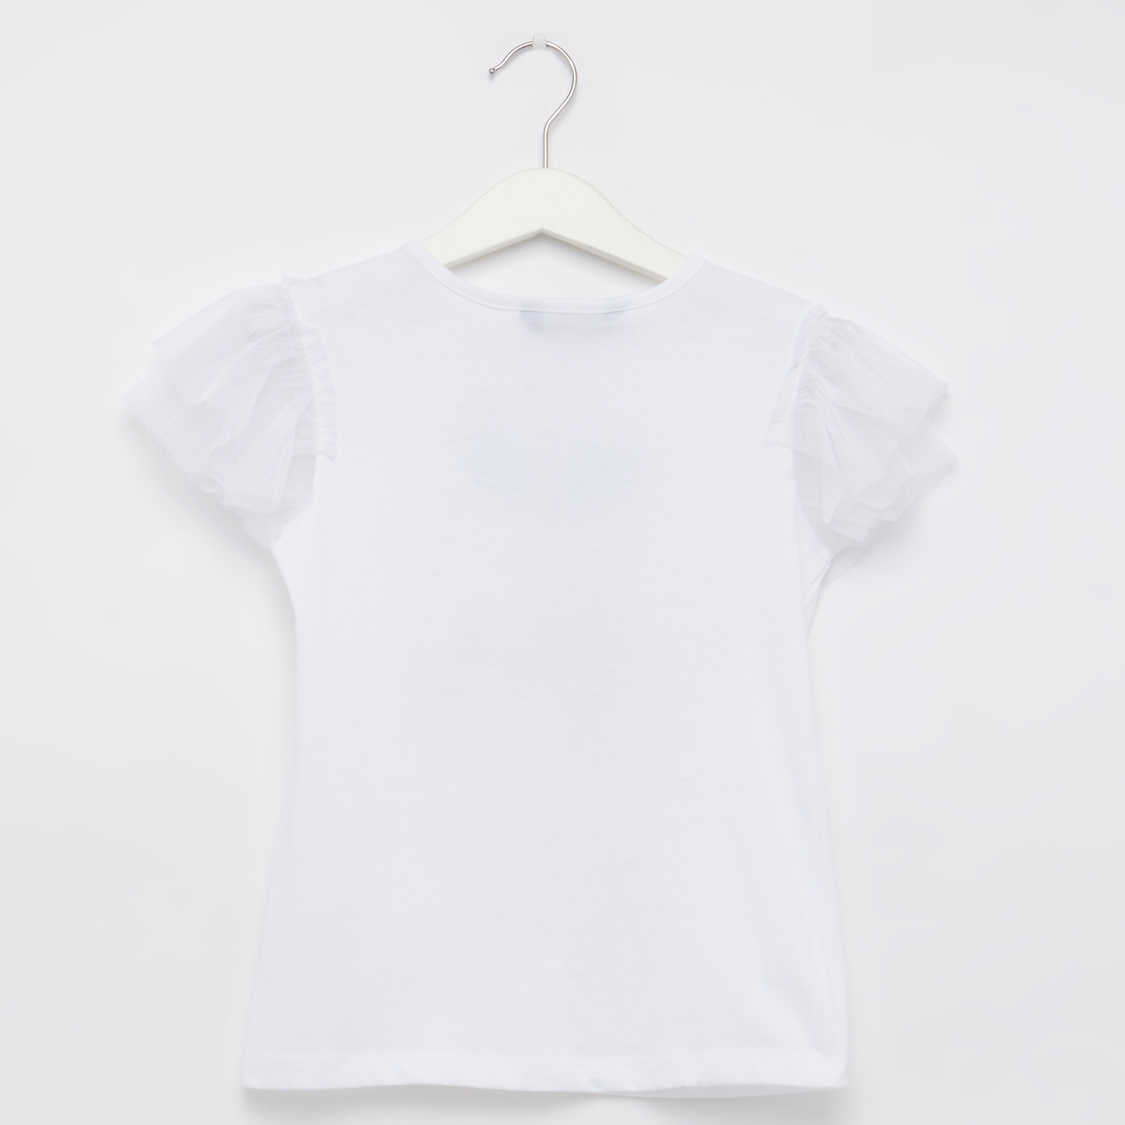 Sequin Detail Round Neck T-shirt with Textured Shorts